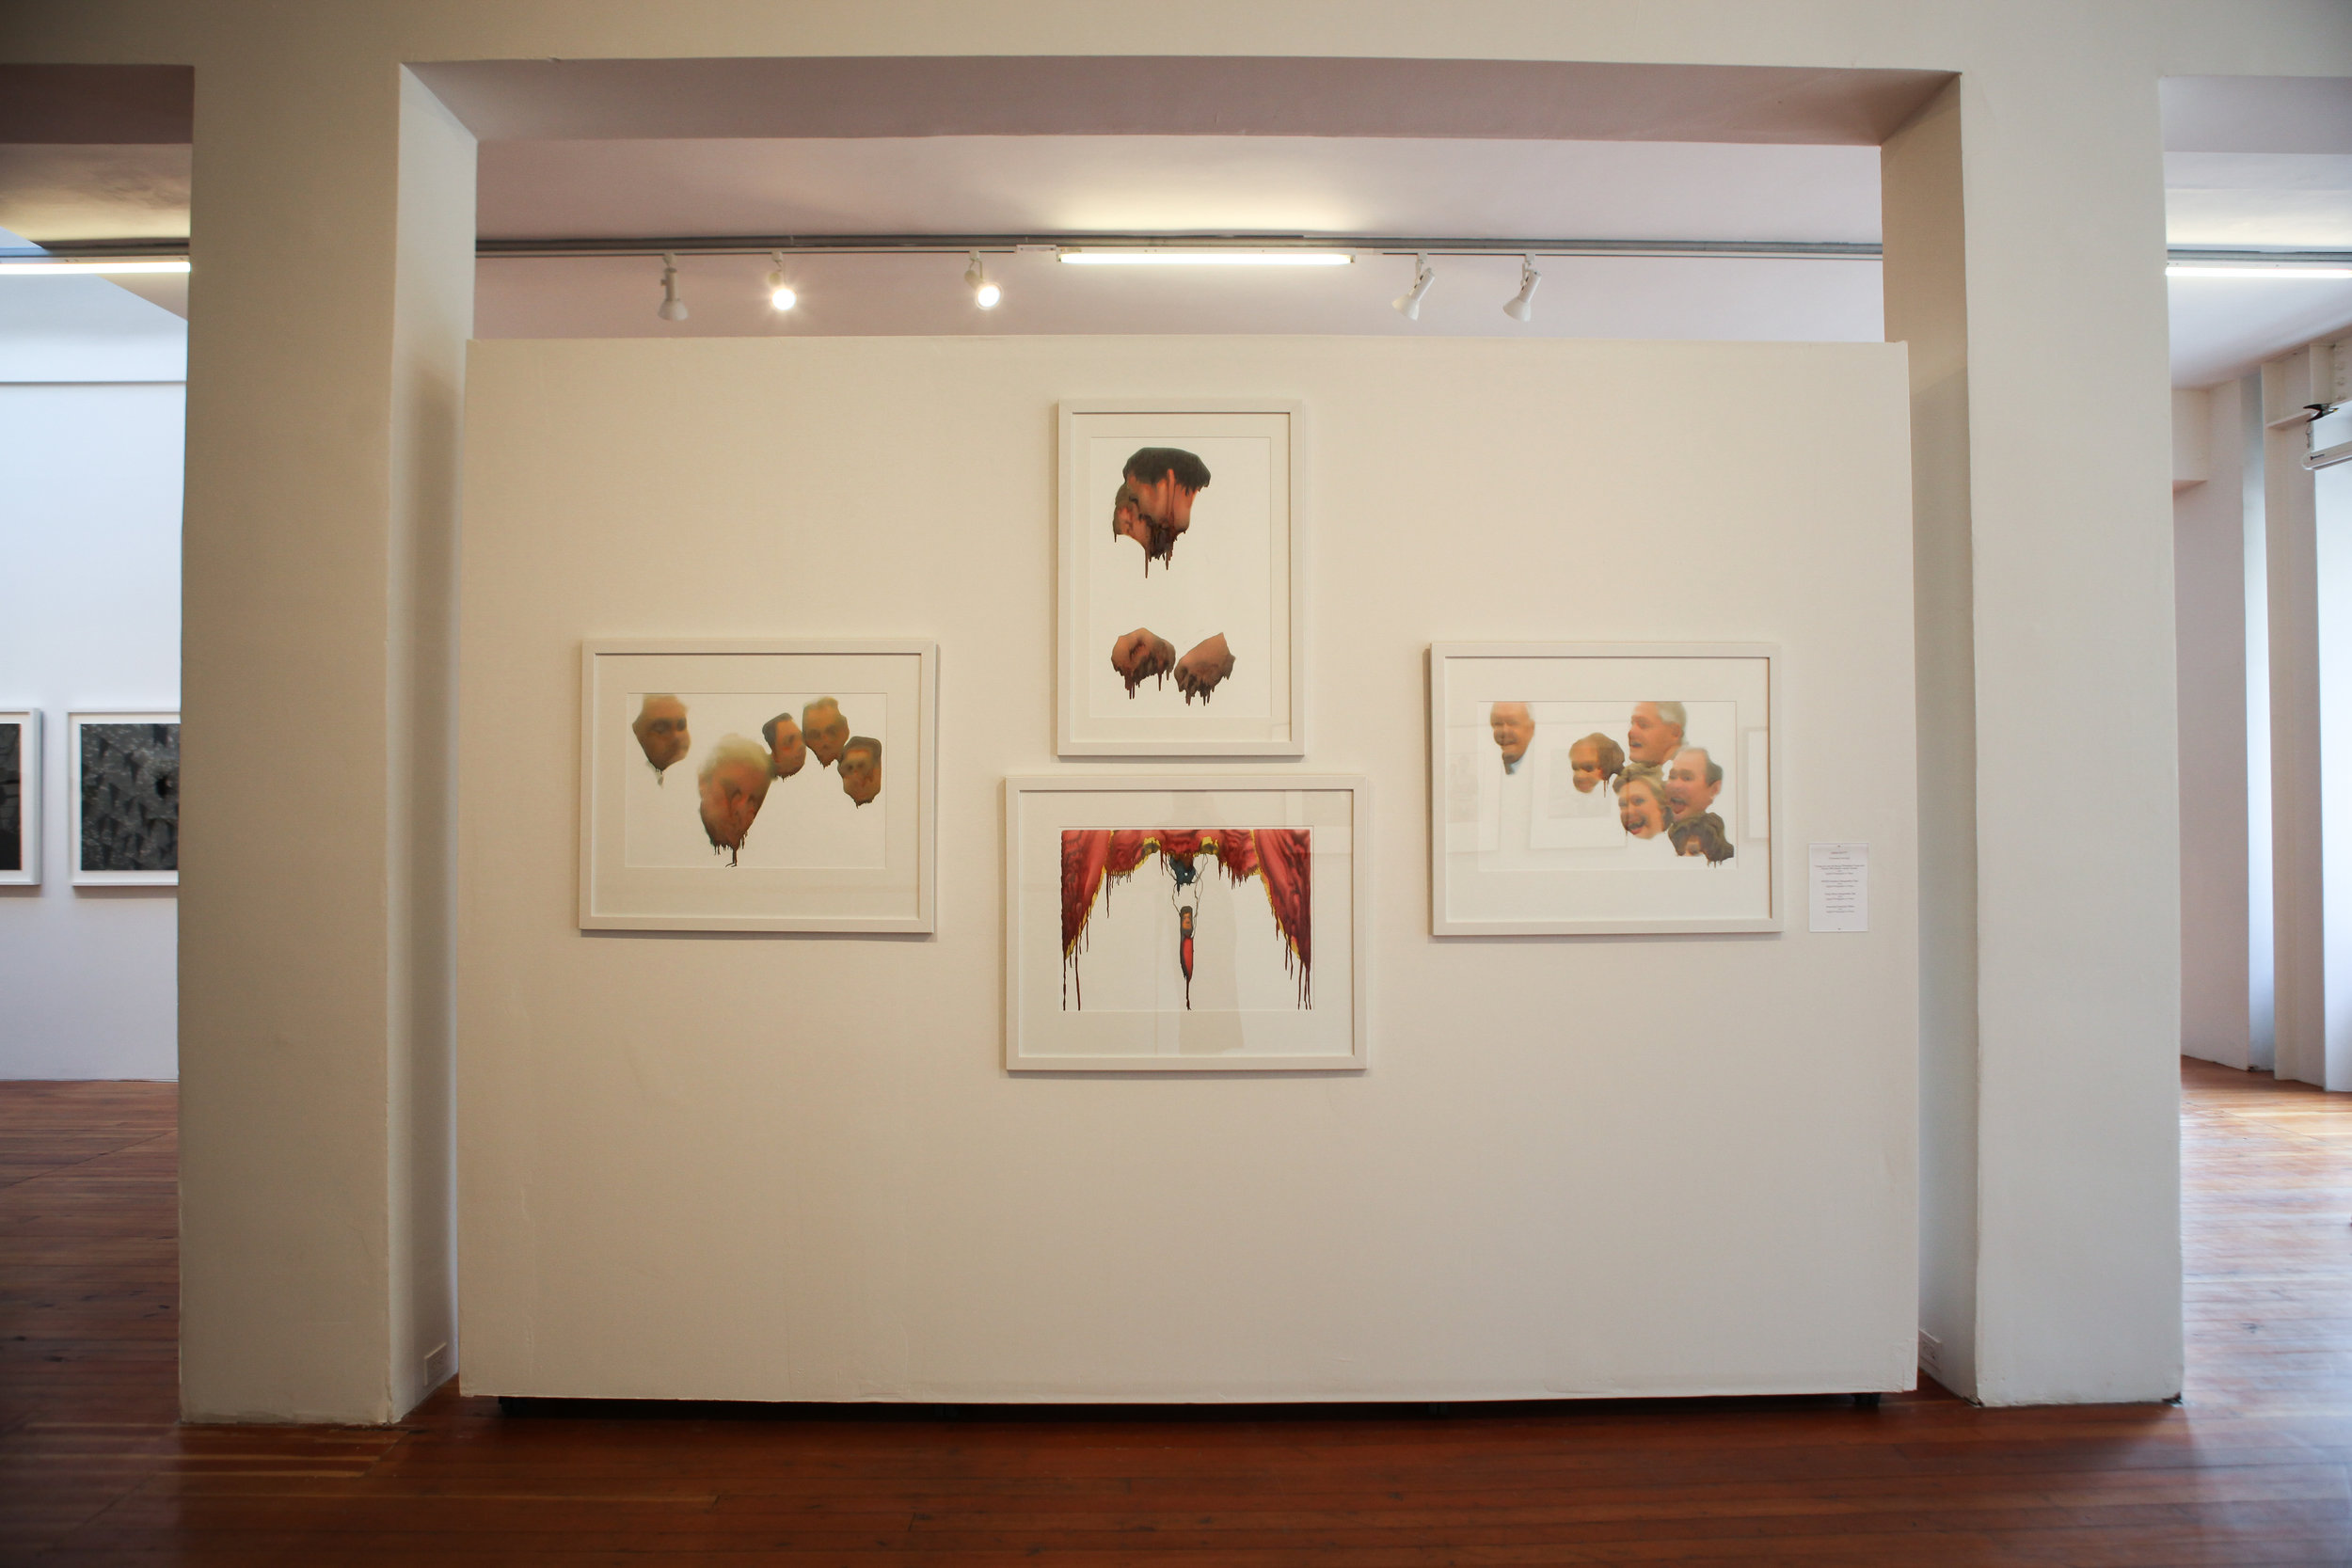 Installation view of Anna Rotty's work.